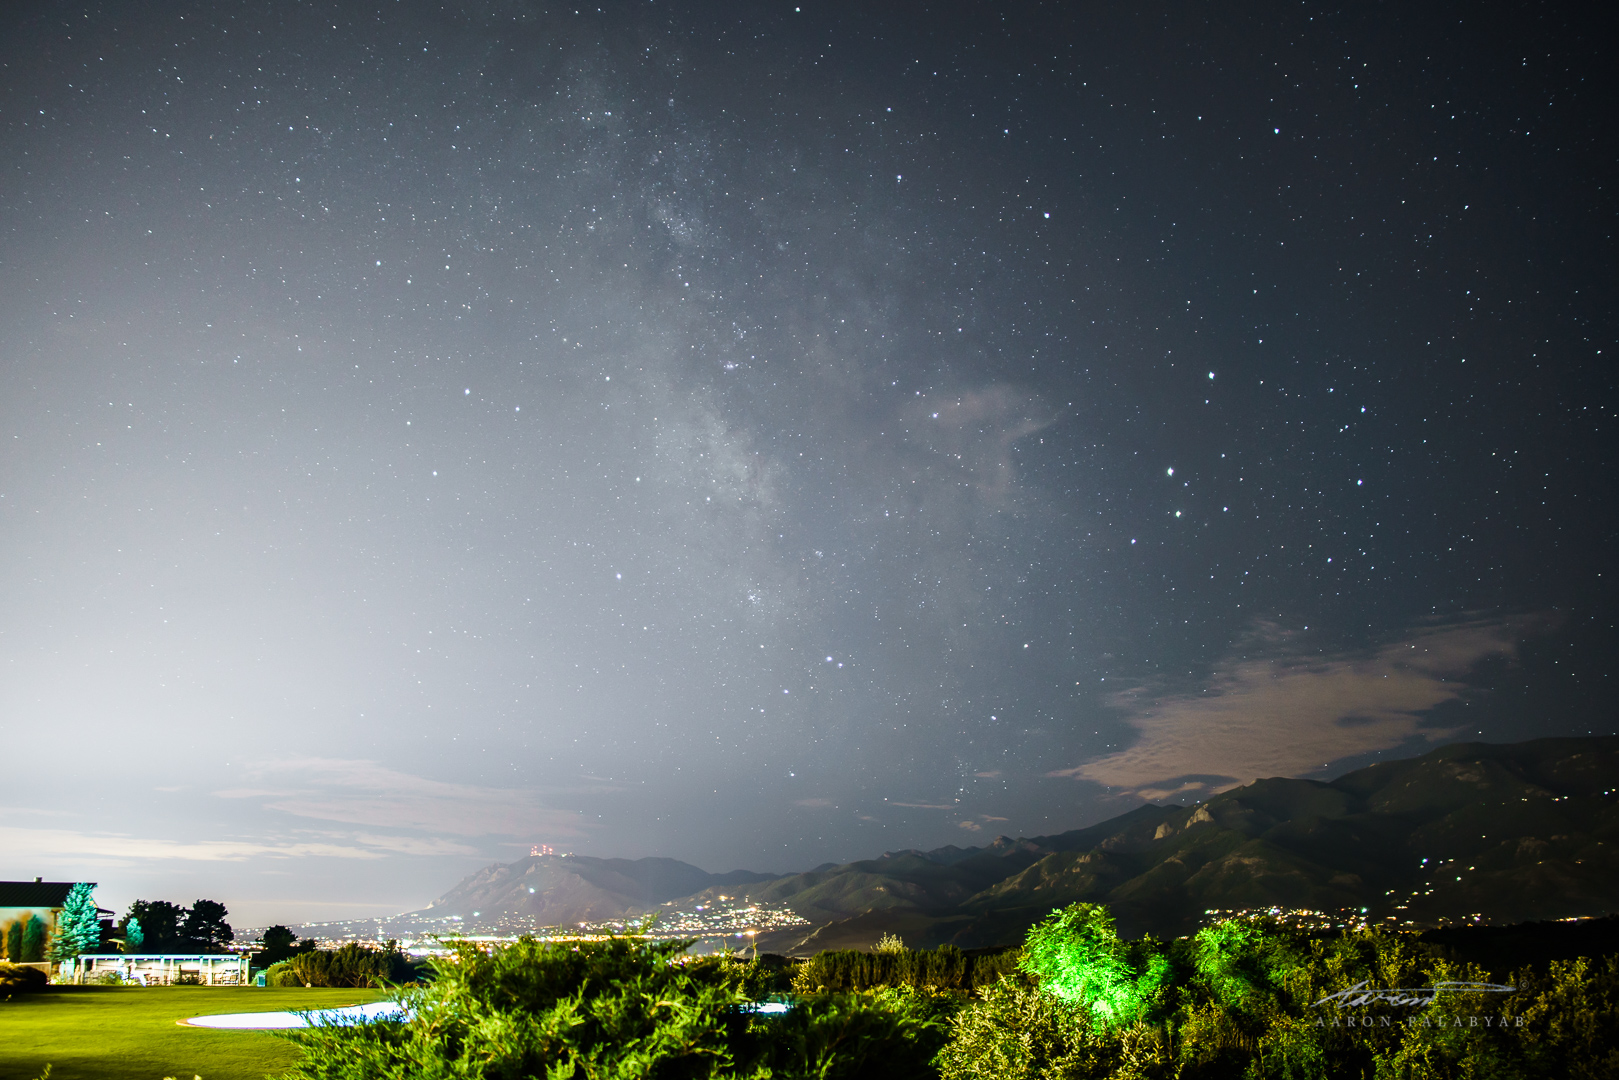 The Milky Way as seen from the Garden of the Gods Club and Resort